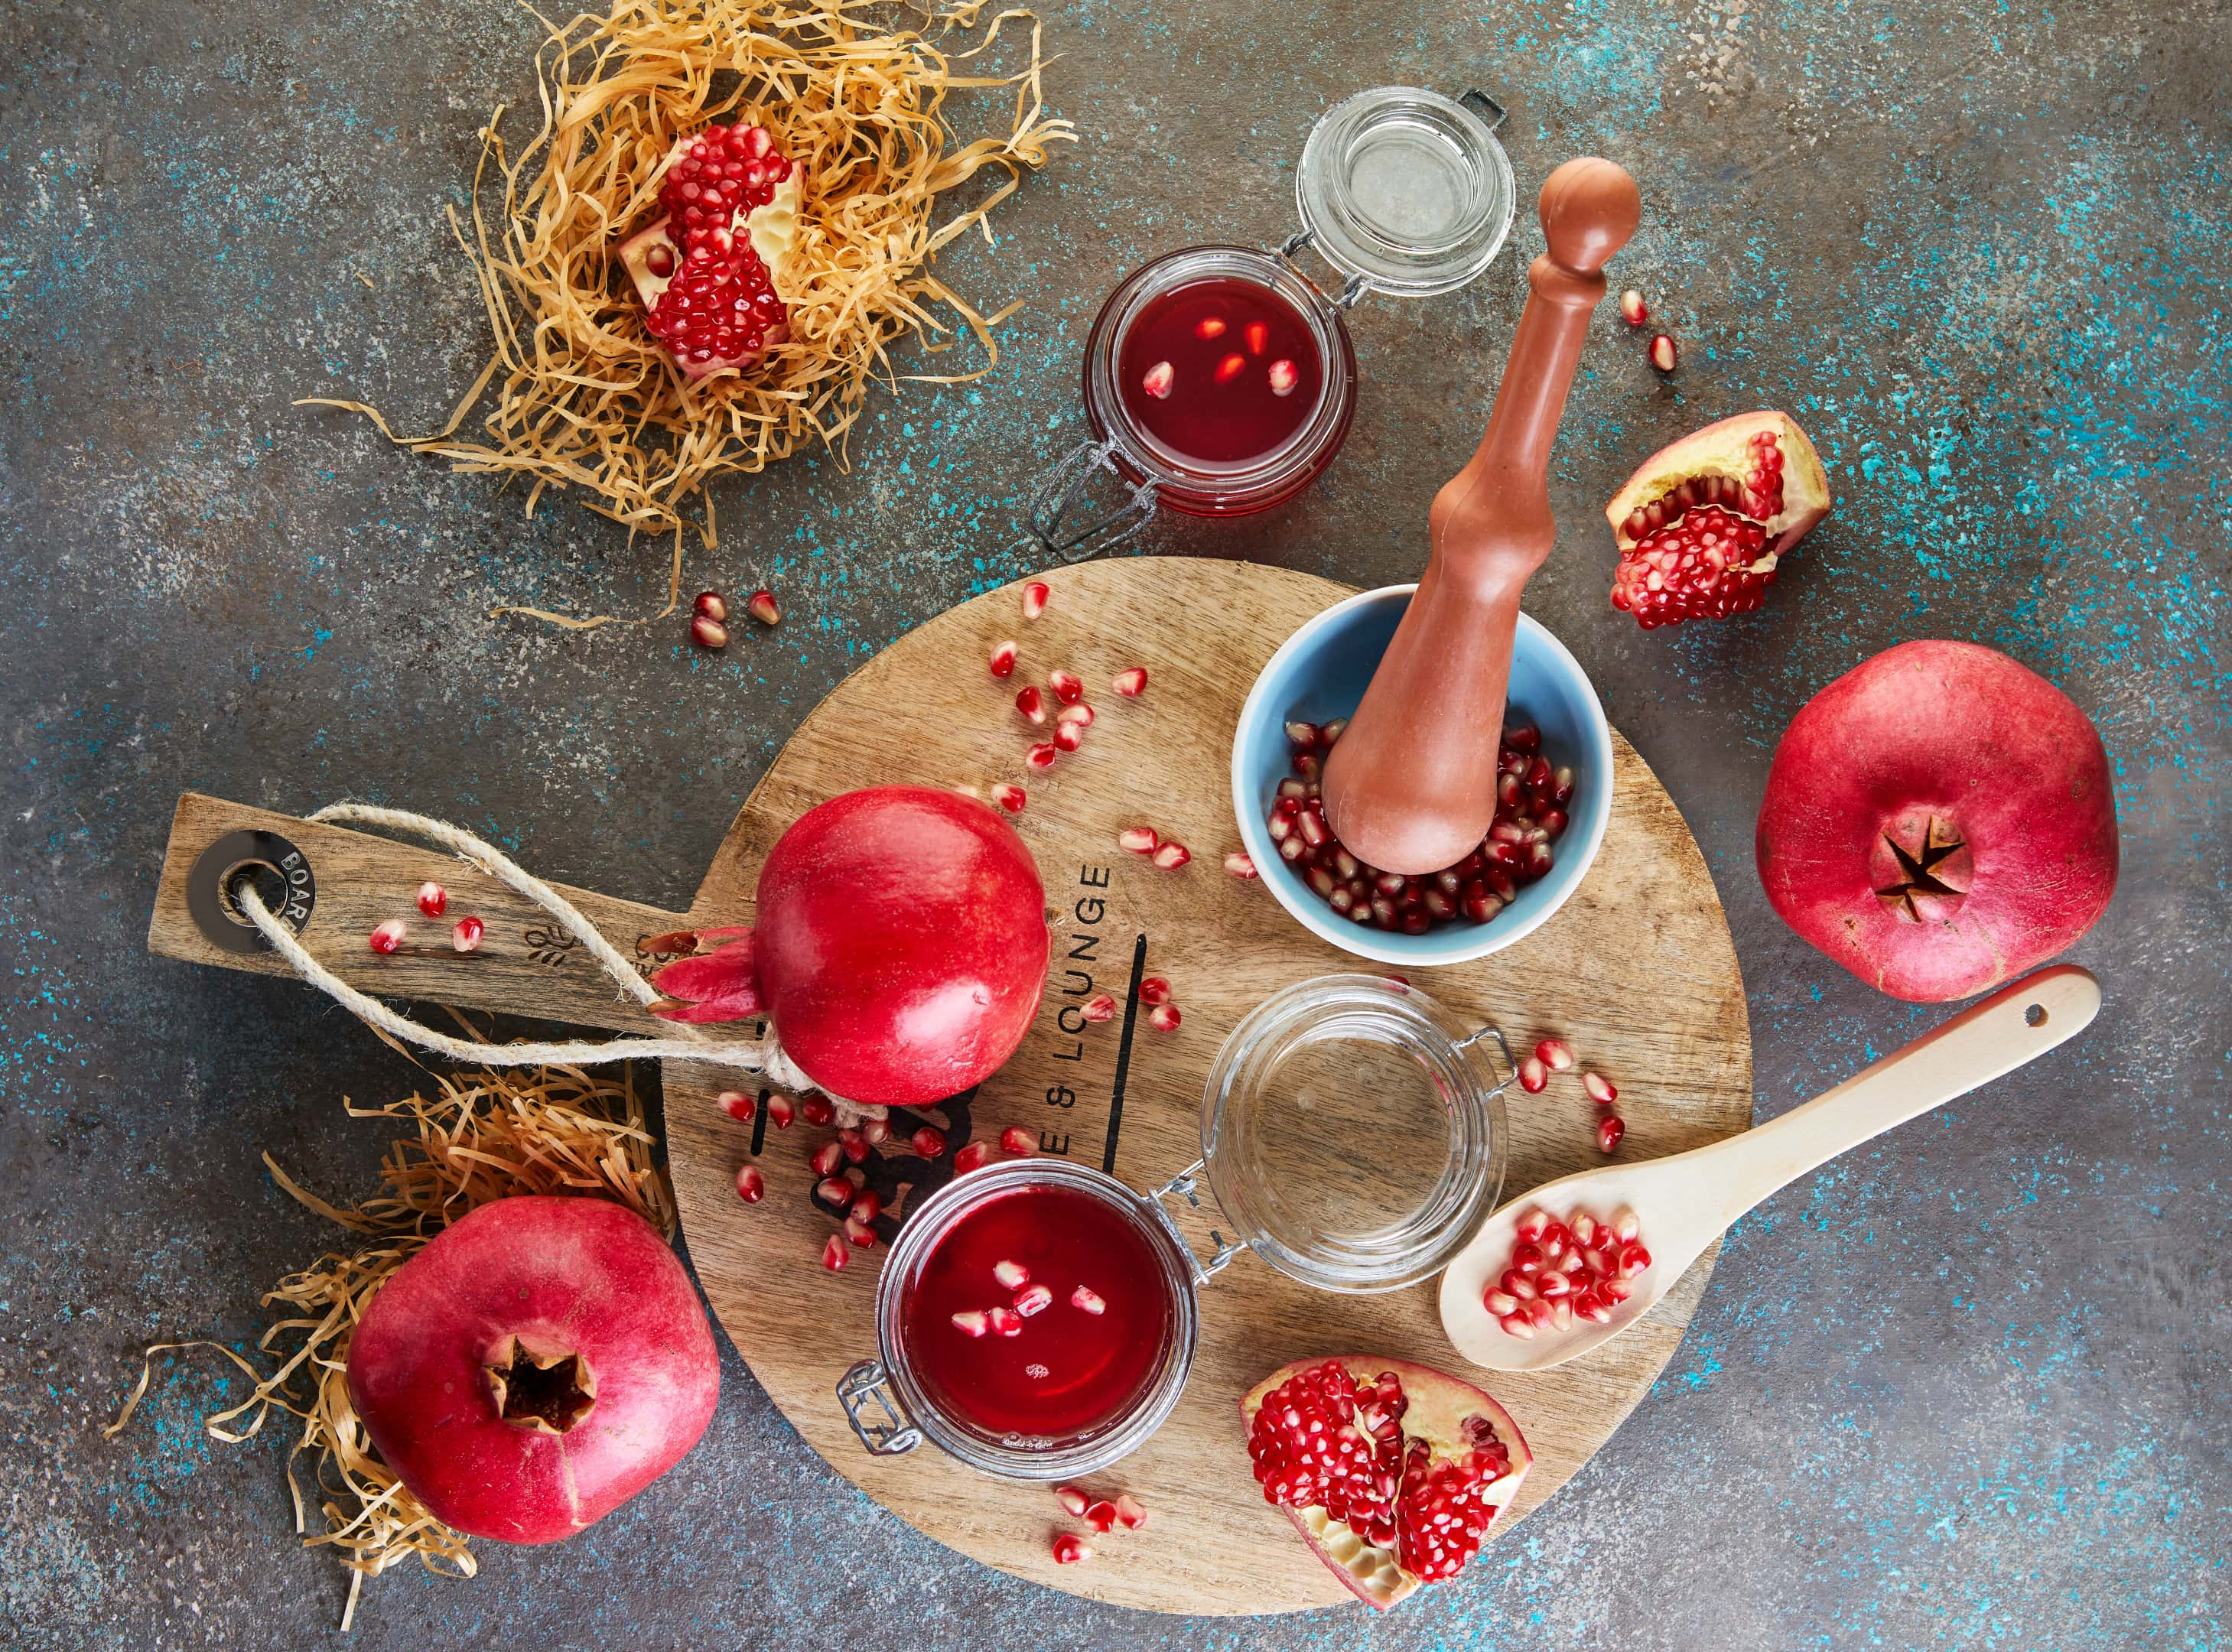 Homemade pomegranate molasses syrup in jars with pomegranate seeds on a wooden board